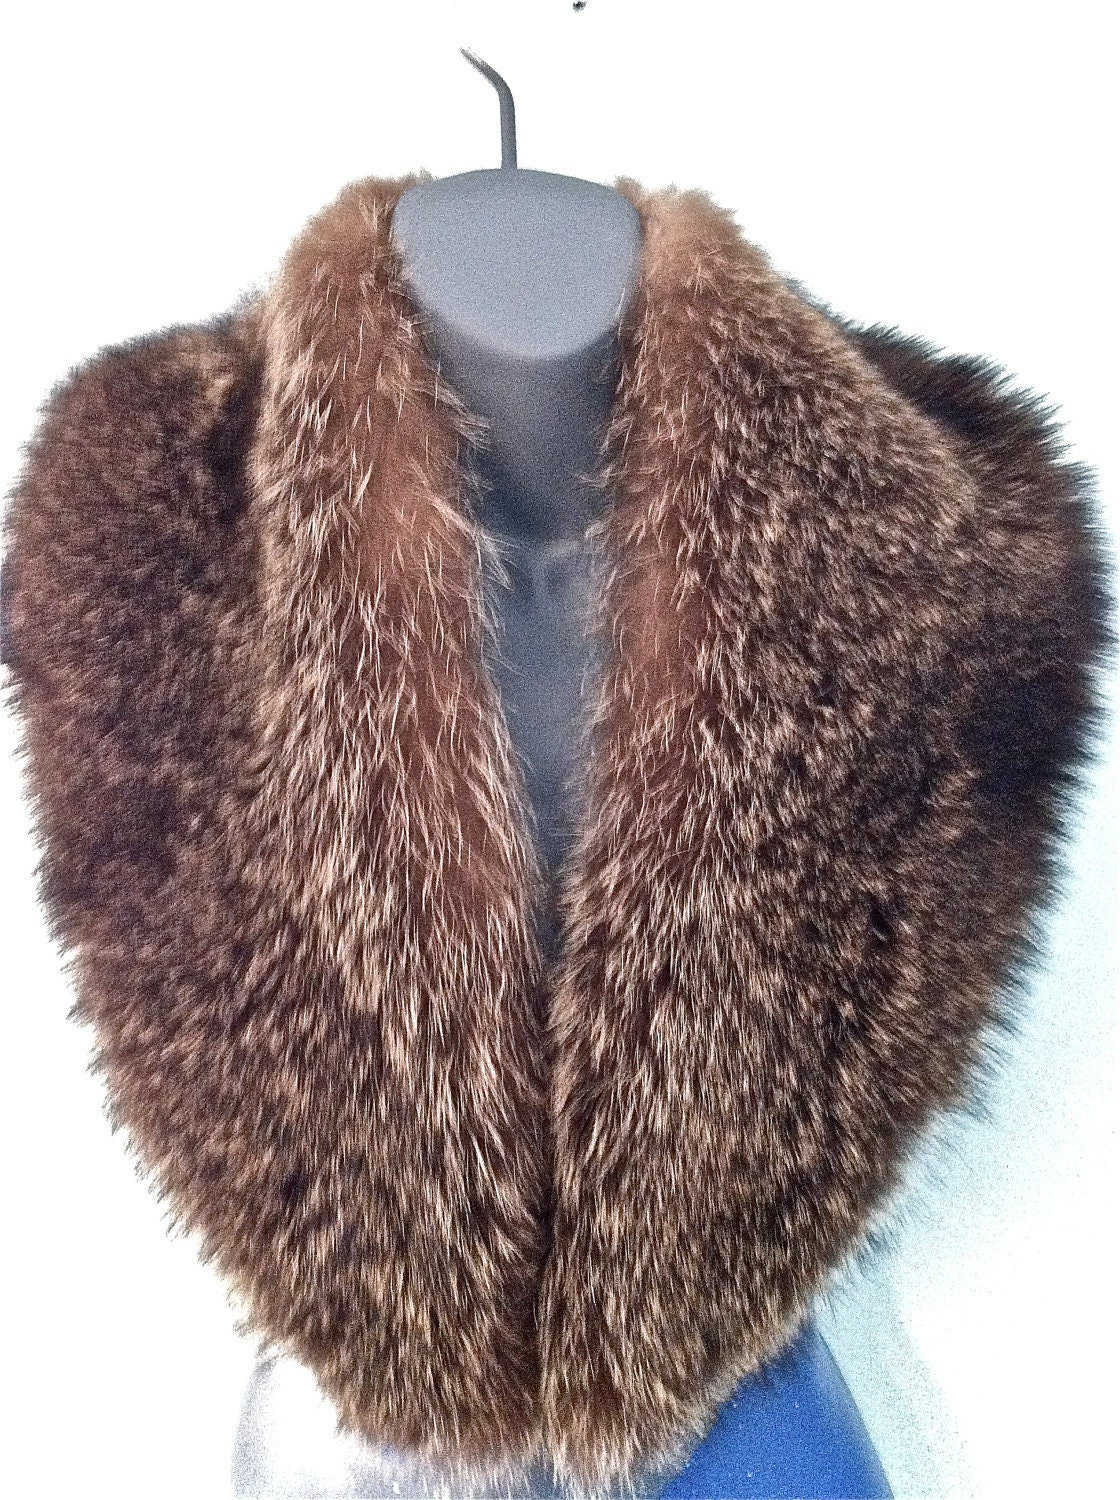 SALE 1930s/1940s Silver Fox Fur Stole Shawl - EXCELLENT Condition - Super PLUSH/Fully Lined